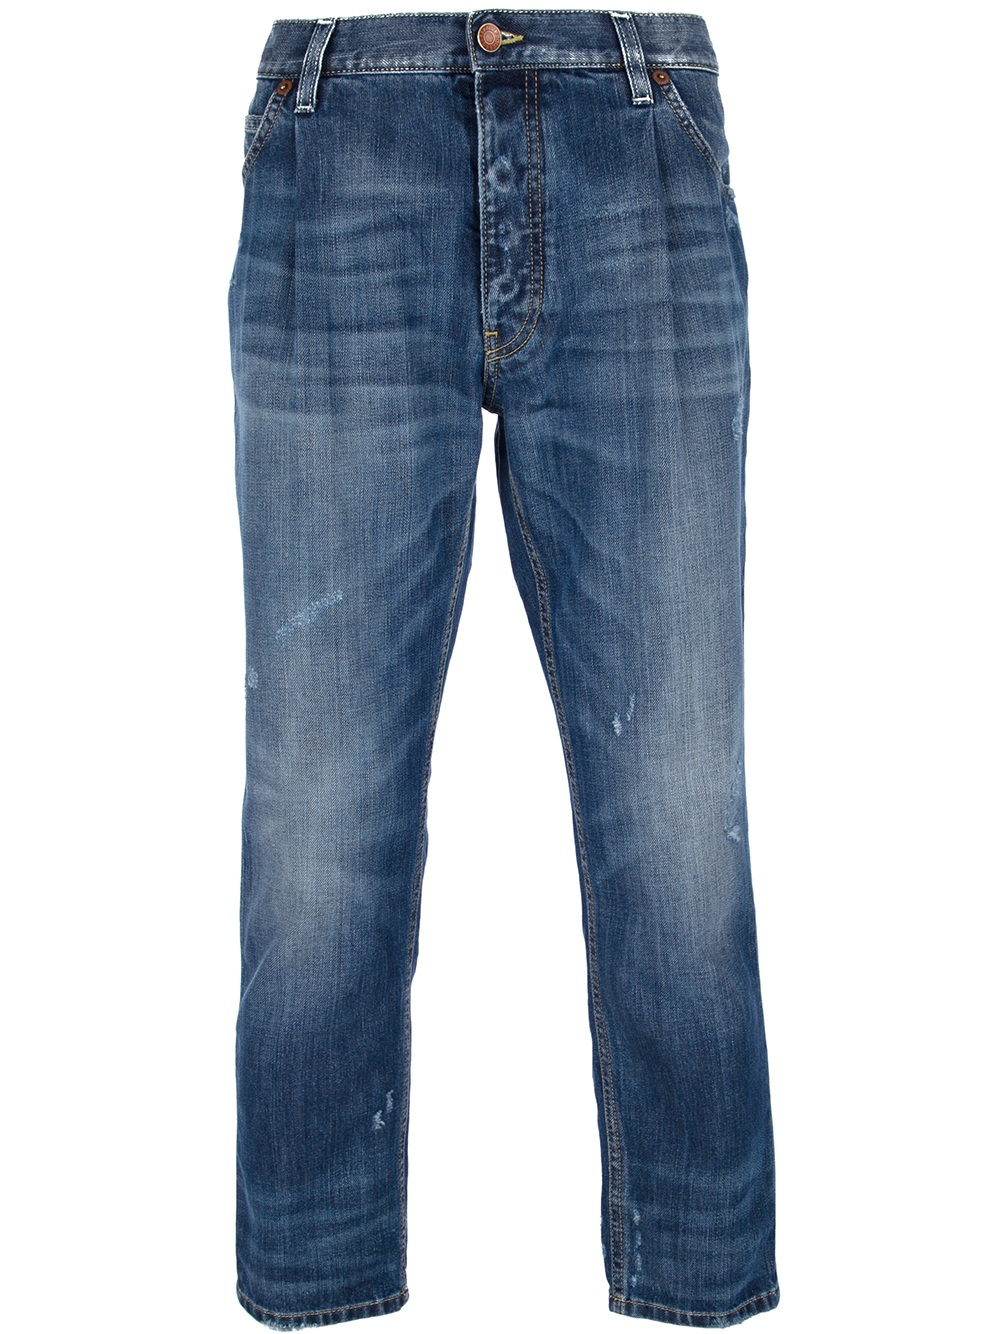 علت پیچیدن پاچه شلوار لی Dolce & gabbana Cropped Jean in Blue for Men Lyst